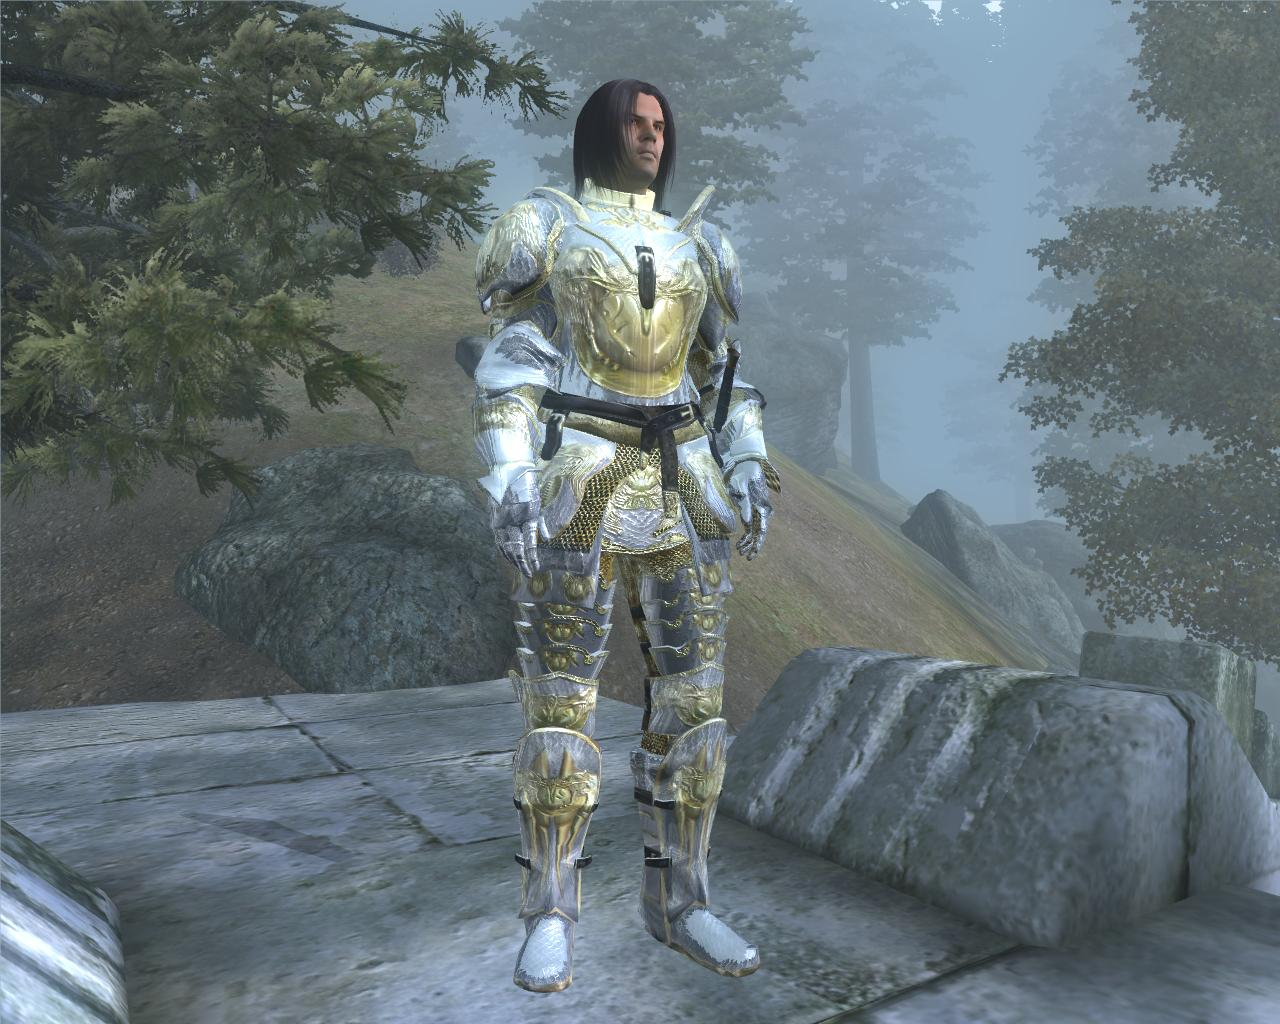 The elder scrolls iv:oblivion - game of the year edition